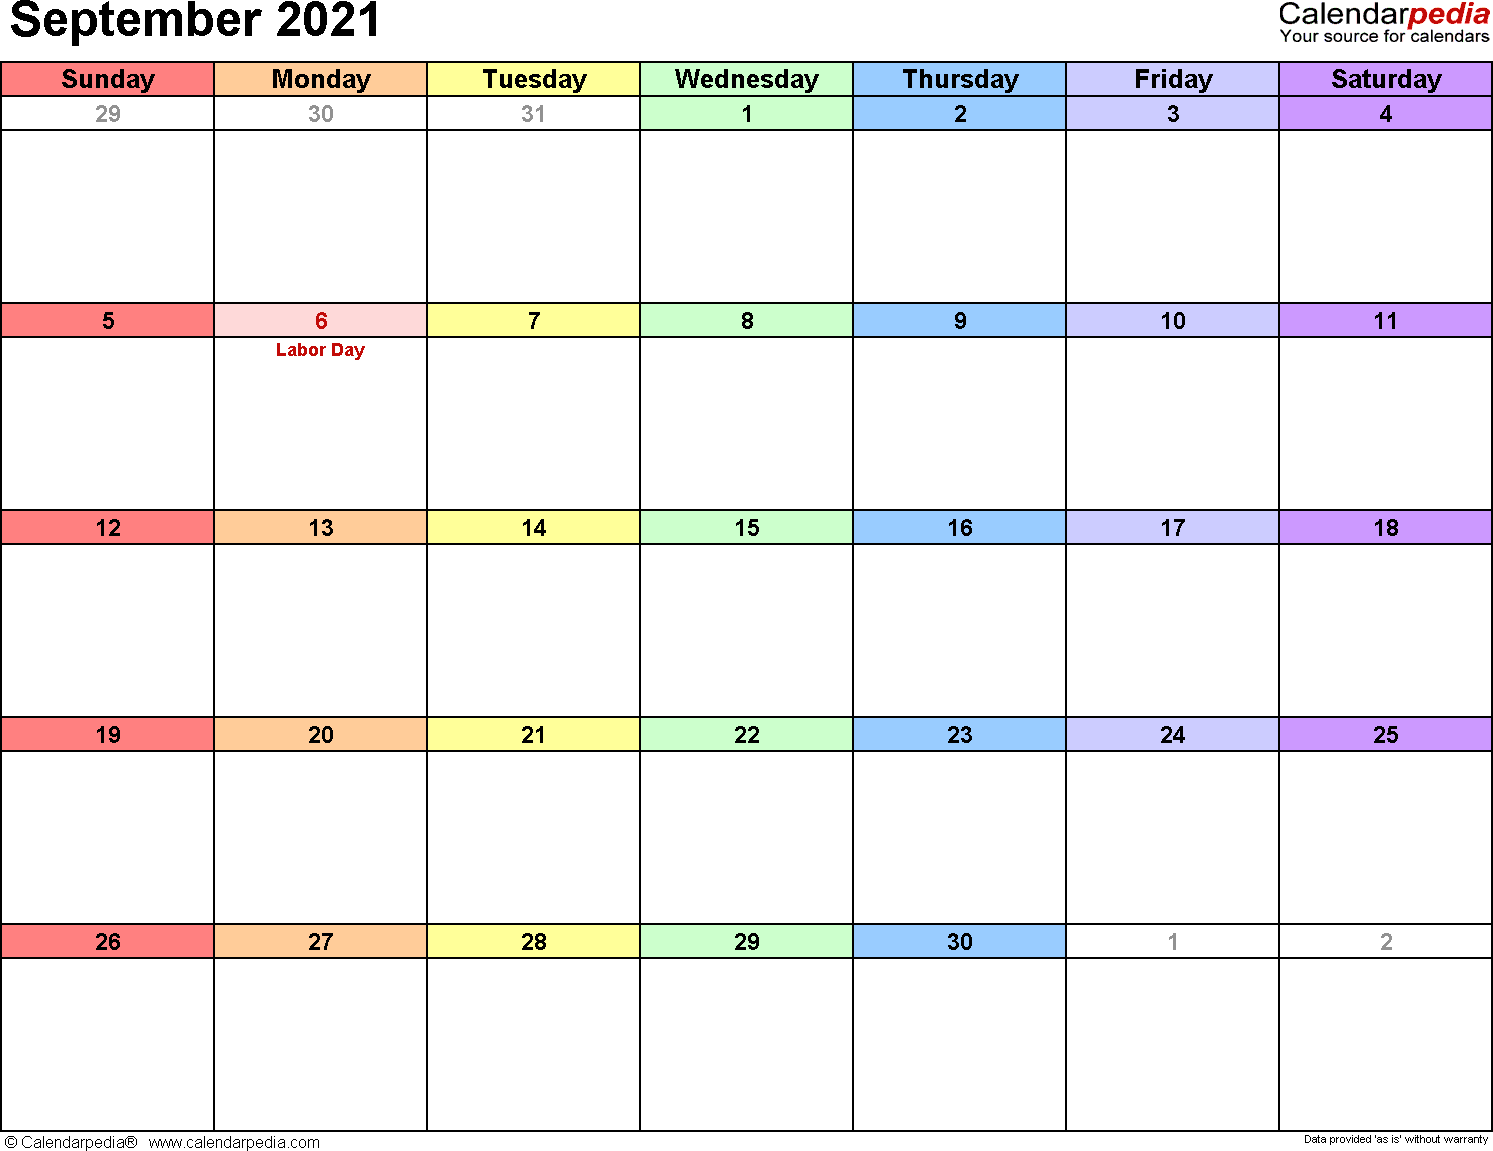 September 2021 calendar printable template